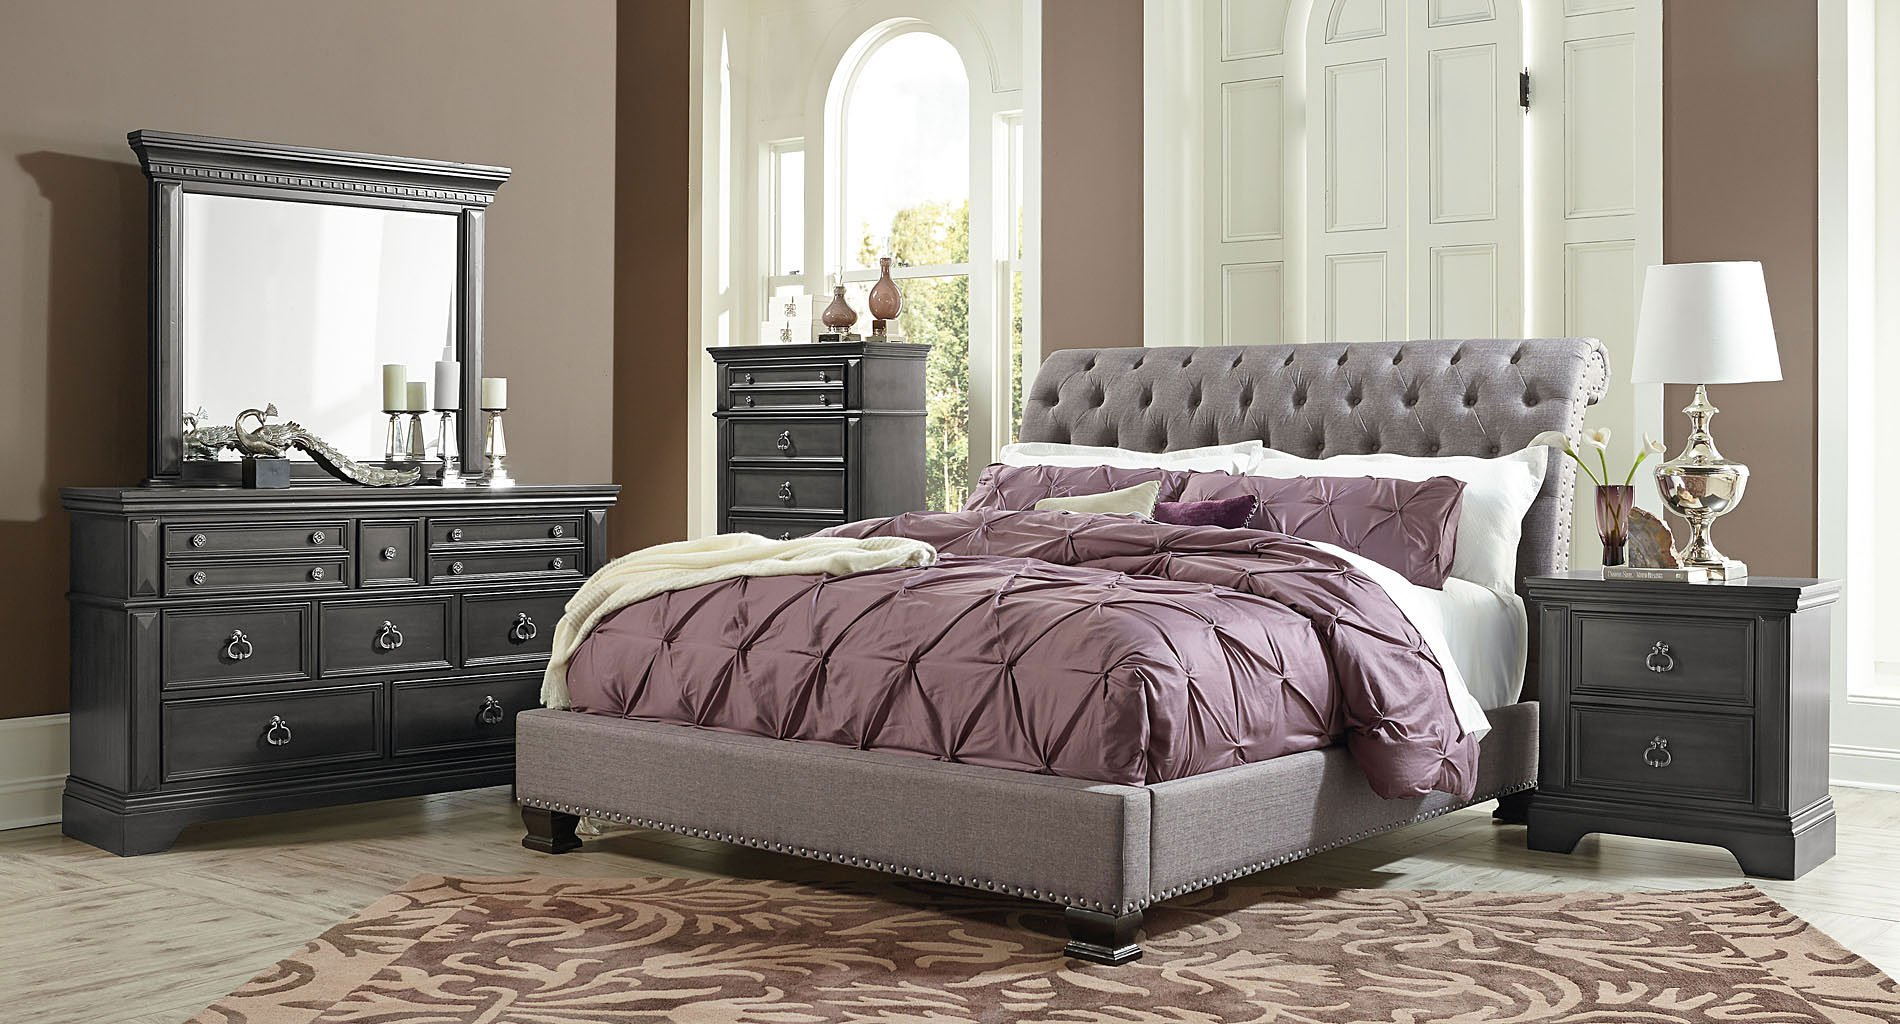 Awesome Upholstered Bedroom Set Decorating Ideas